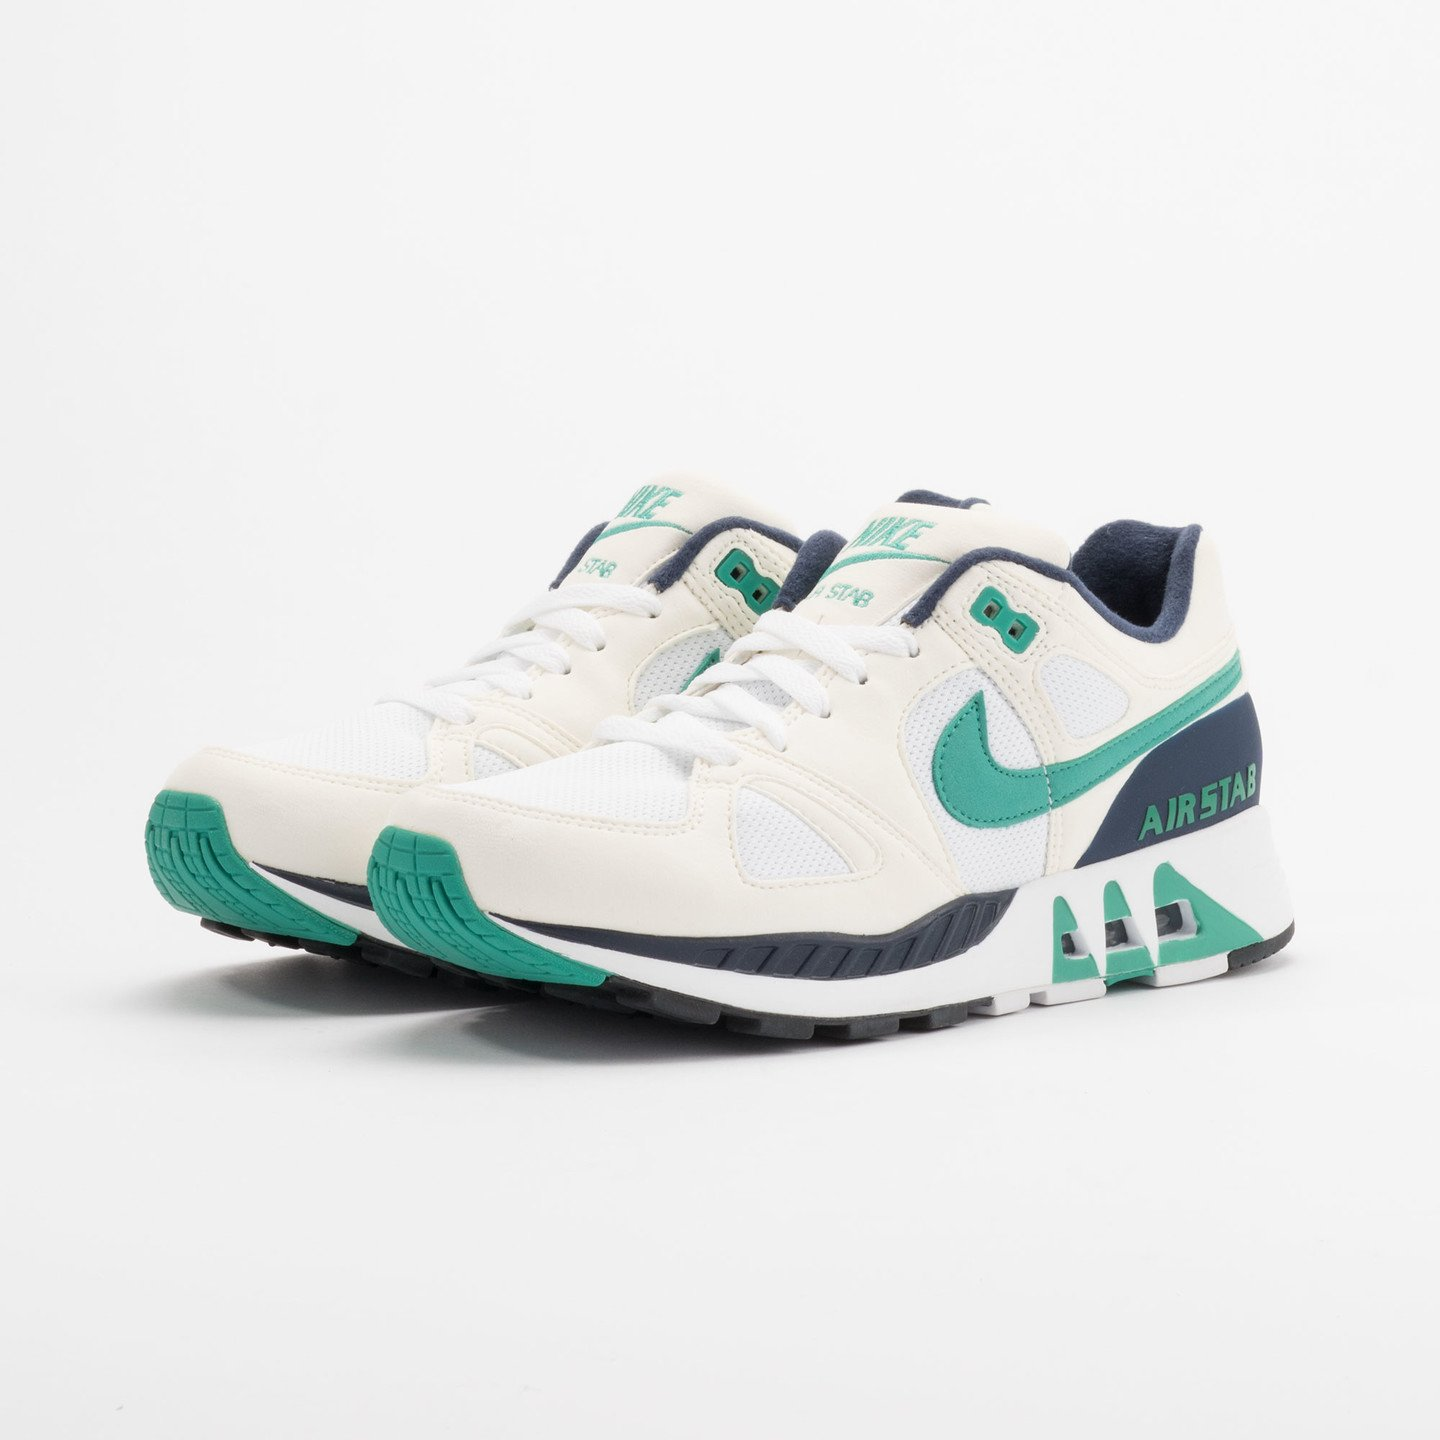 Nike Air Stab White/Emerald Green-Sl-Mid Nvy 312451-100-40.5